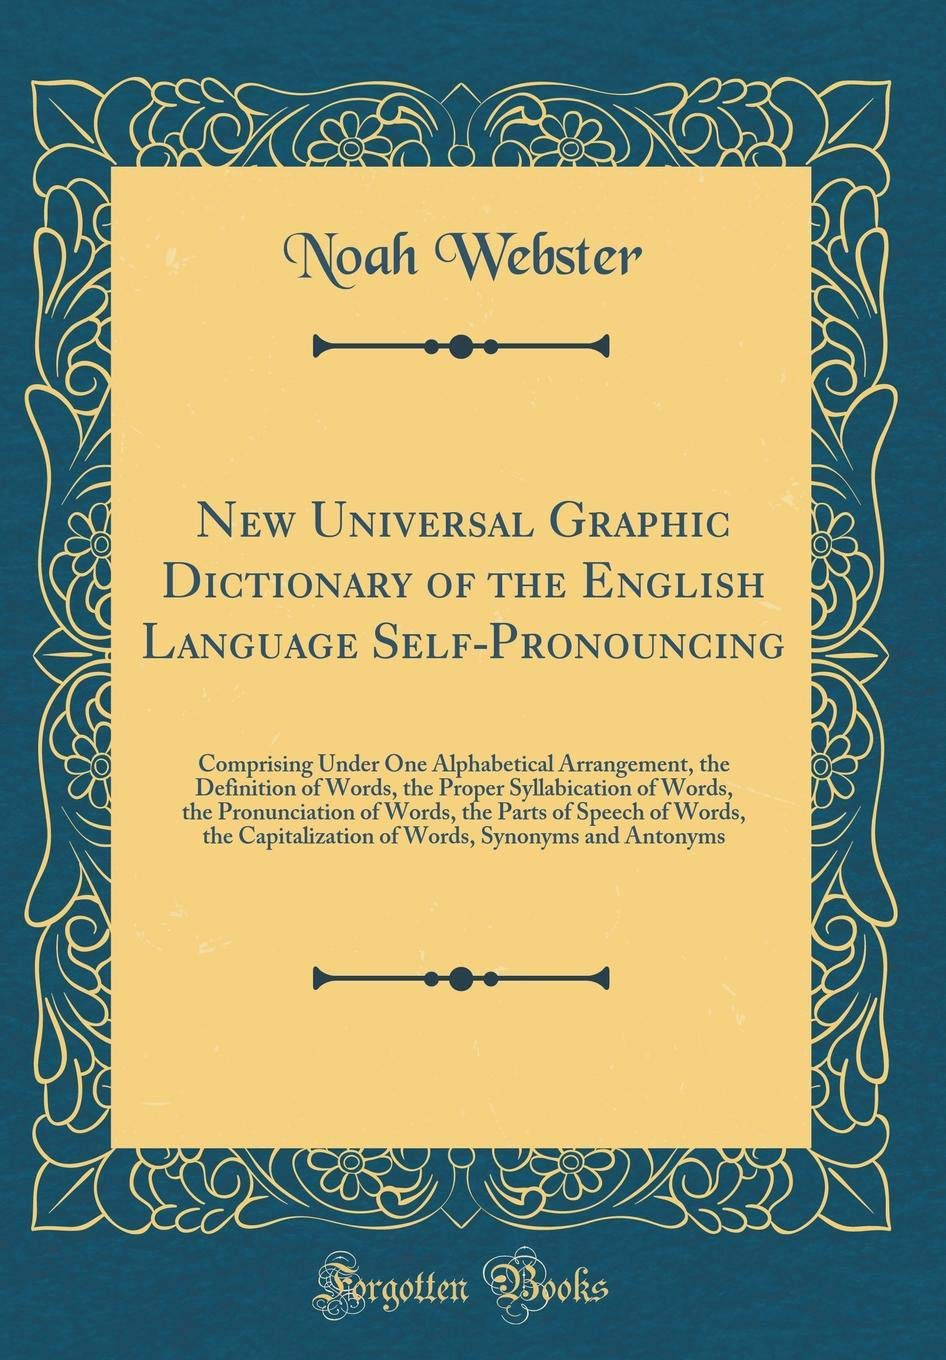 Read Online New Universal Graphic Dictionary of the English Language Self-Pronouncing: Comprising Under One Alphabetical Arrangement, the Definition of Words, the ... the Parts of Speech of Words, the Capitalizat pdf